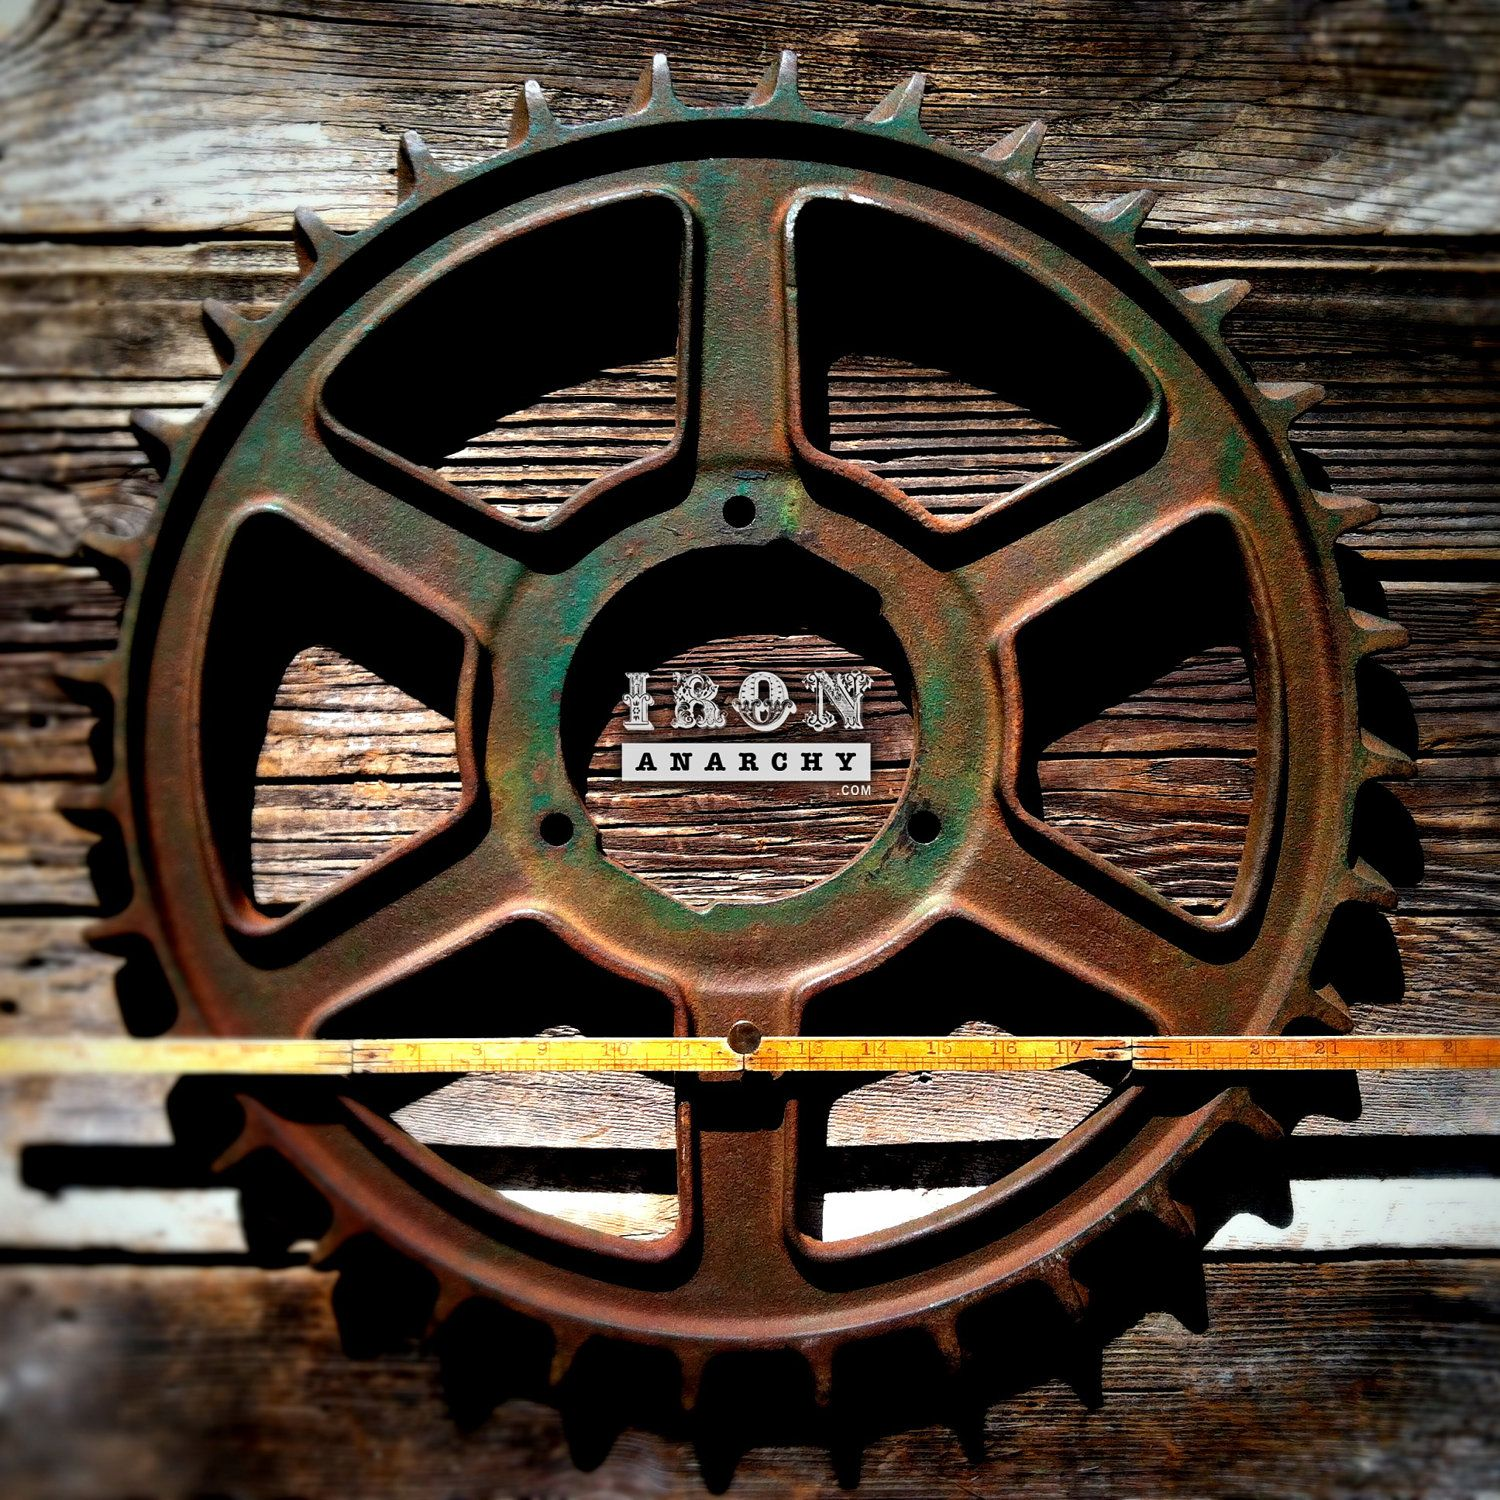 Antique Industrial Gear Vintage Cast Iron Metal Wheel